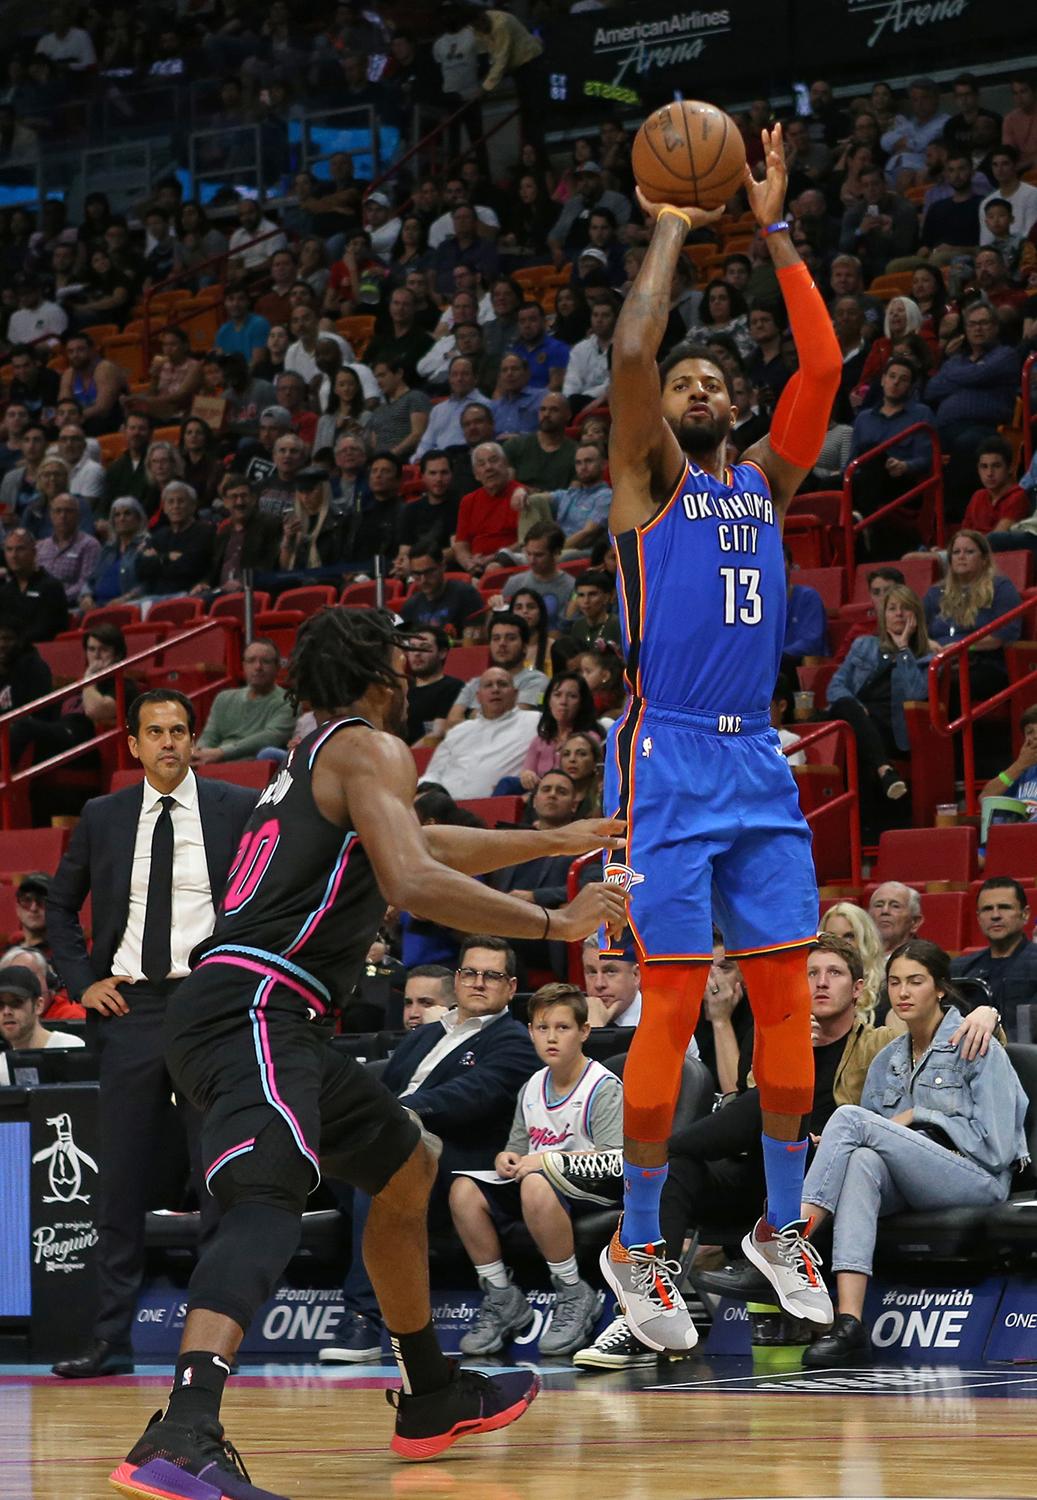 The Oklahoma City Thunder's Paul George (13) shoots over the Miami Heat's Justise Winslow in the third quarter at AmericanAirlines Arena in Miami on Friday, Feb. 1.